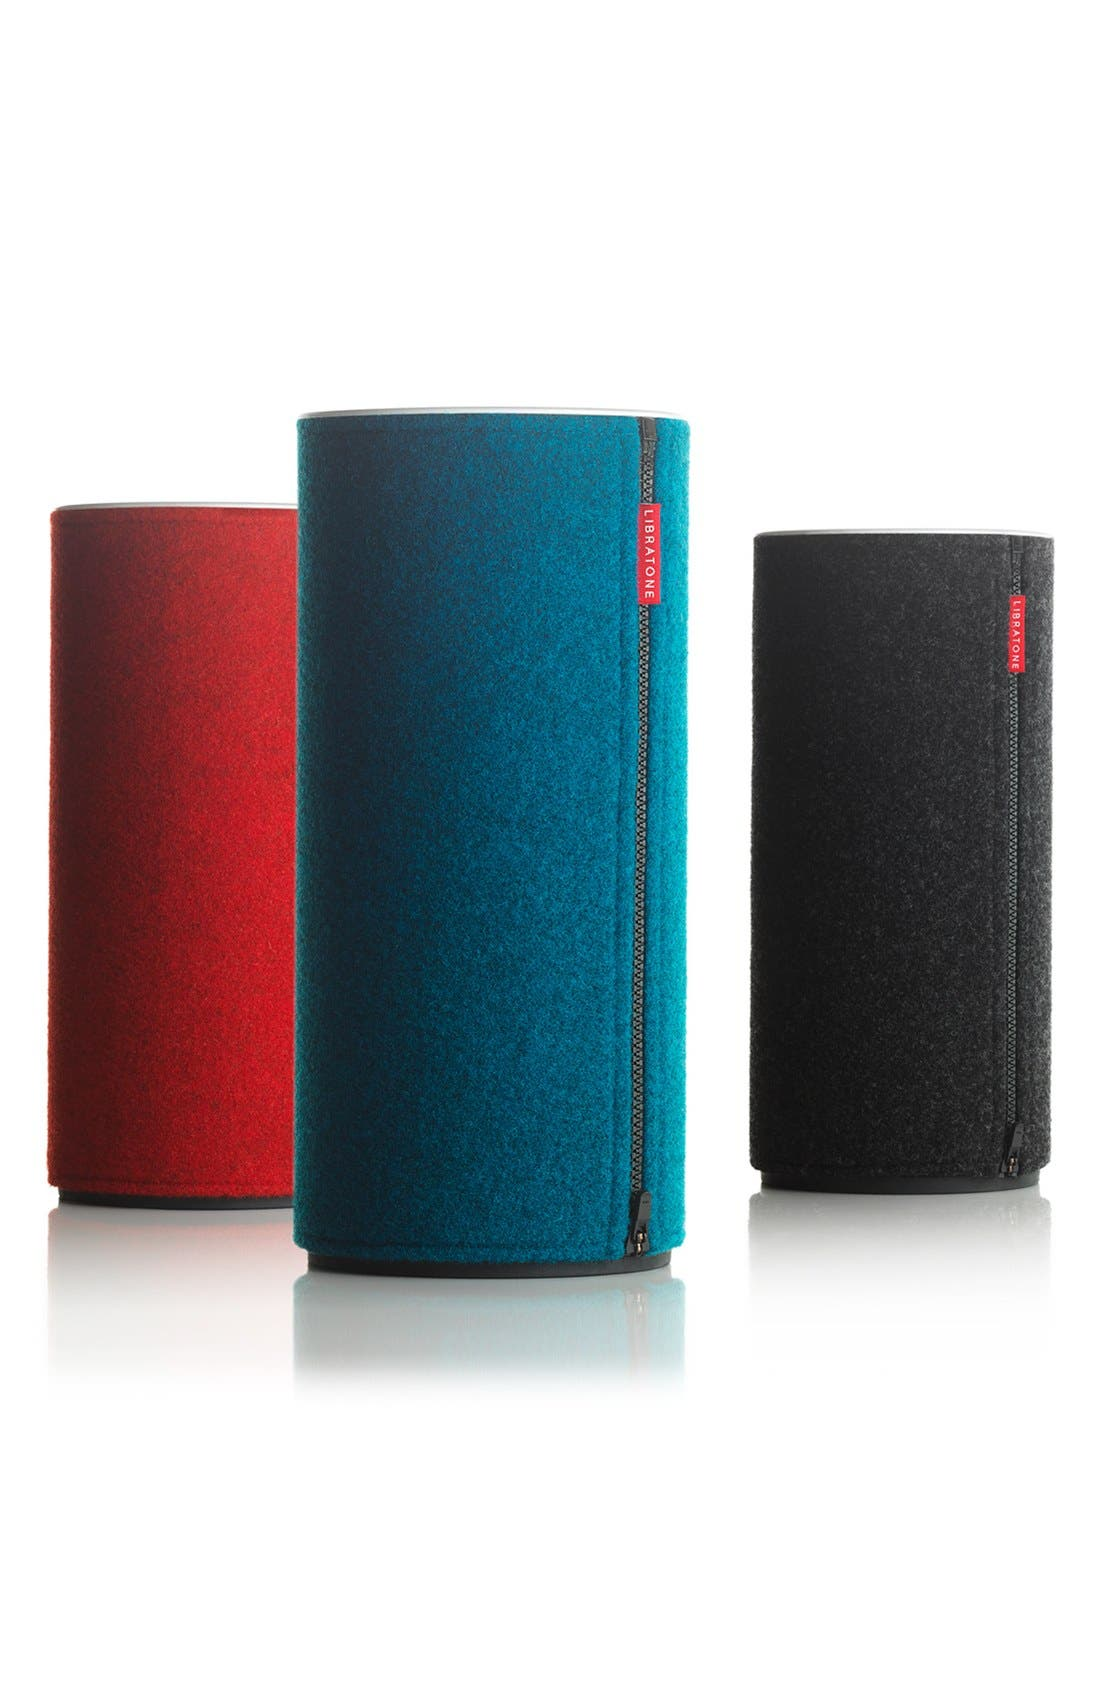 Alternate Image 1 Selected - Libratone™ 'ZIPP - Classic' Take Along Wireless Speaker with Interchangeable Covers